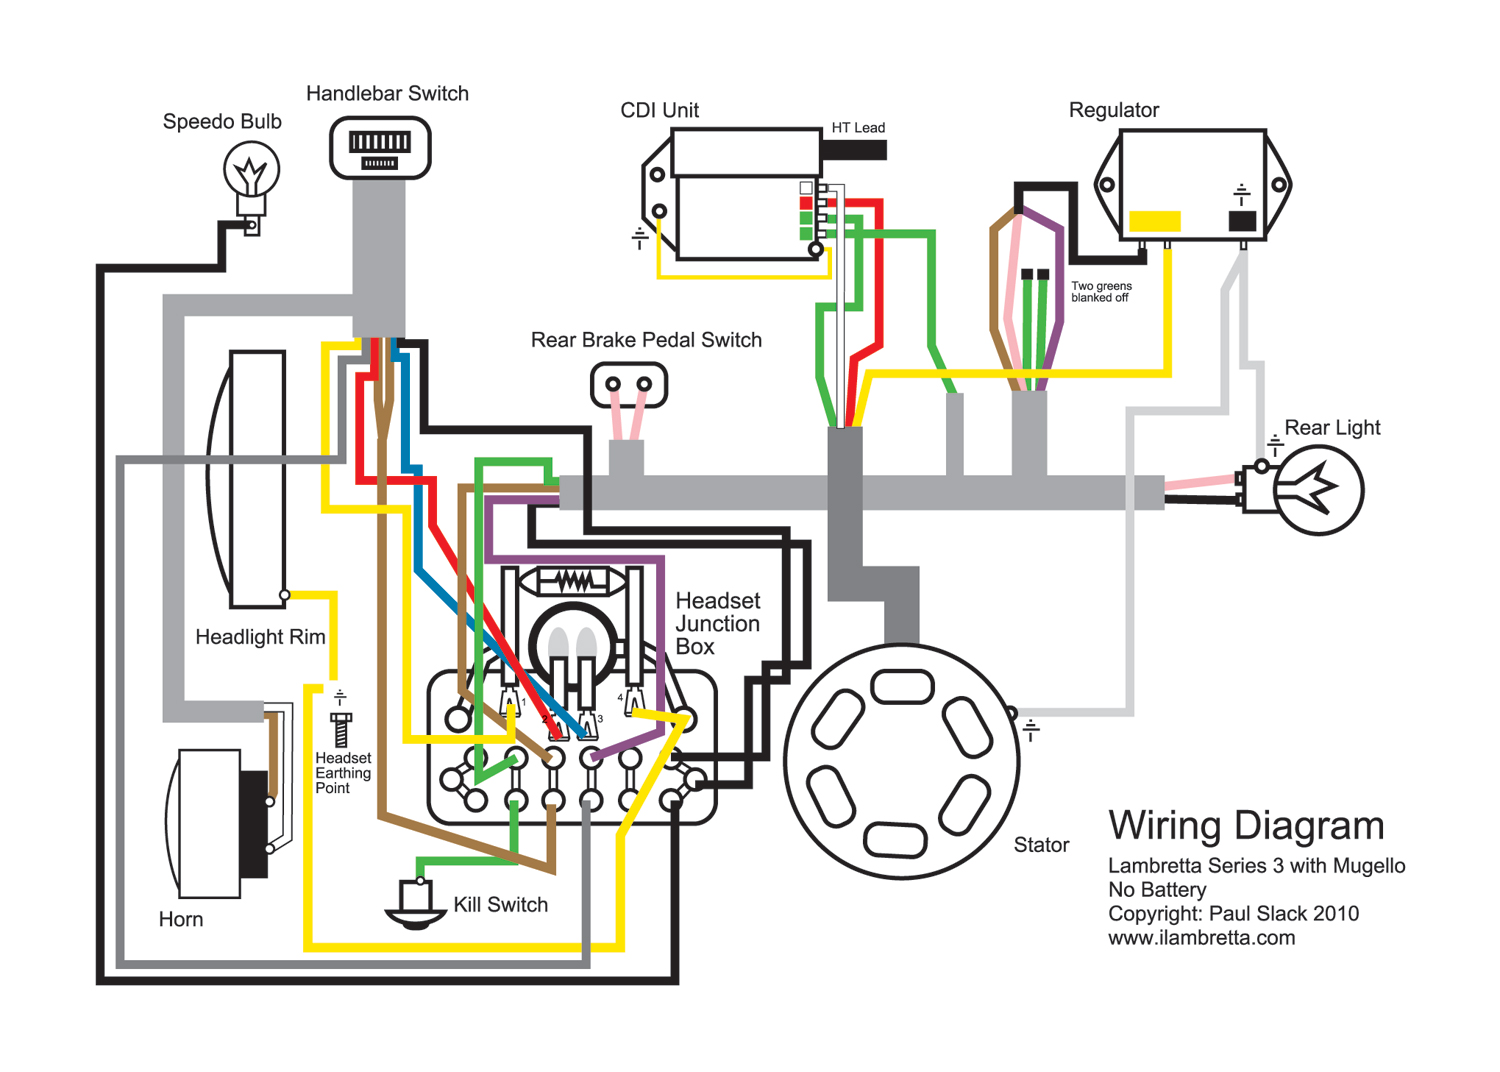 Chinese Scooter Ignition Switch Diagram Electrical Wiring Diagrams Gas Furnace Ignitor Replacement Schematics 49cc Moped